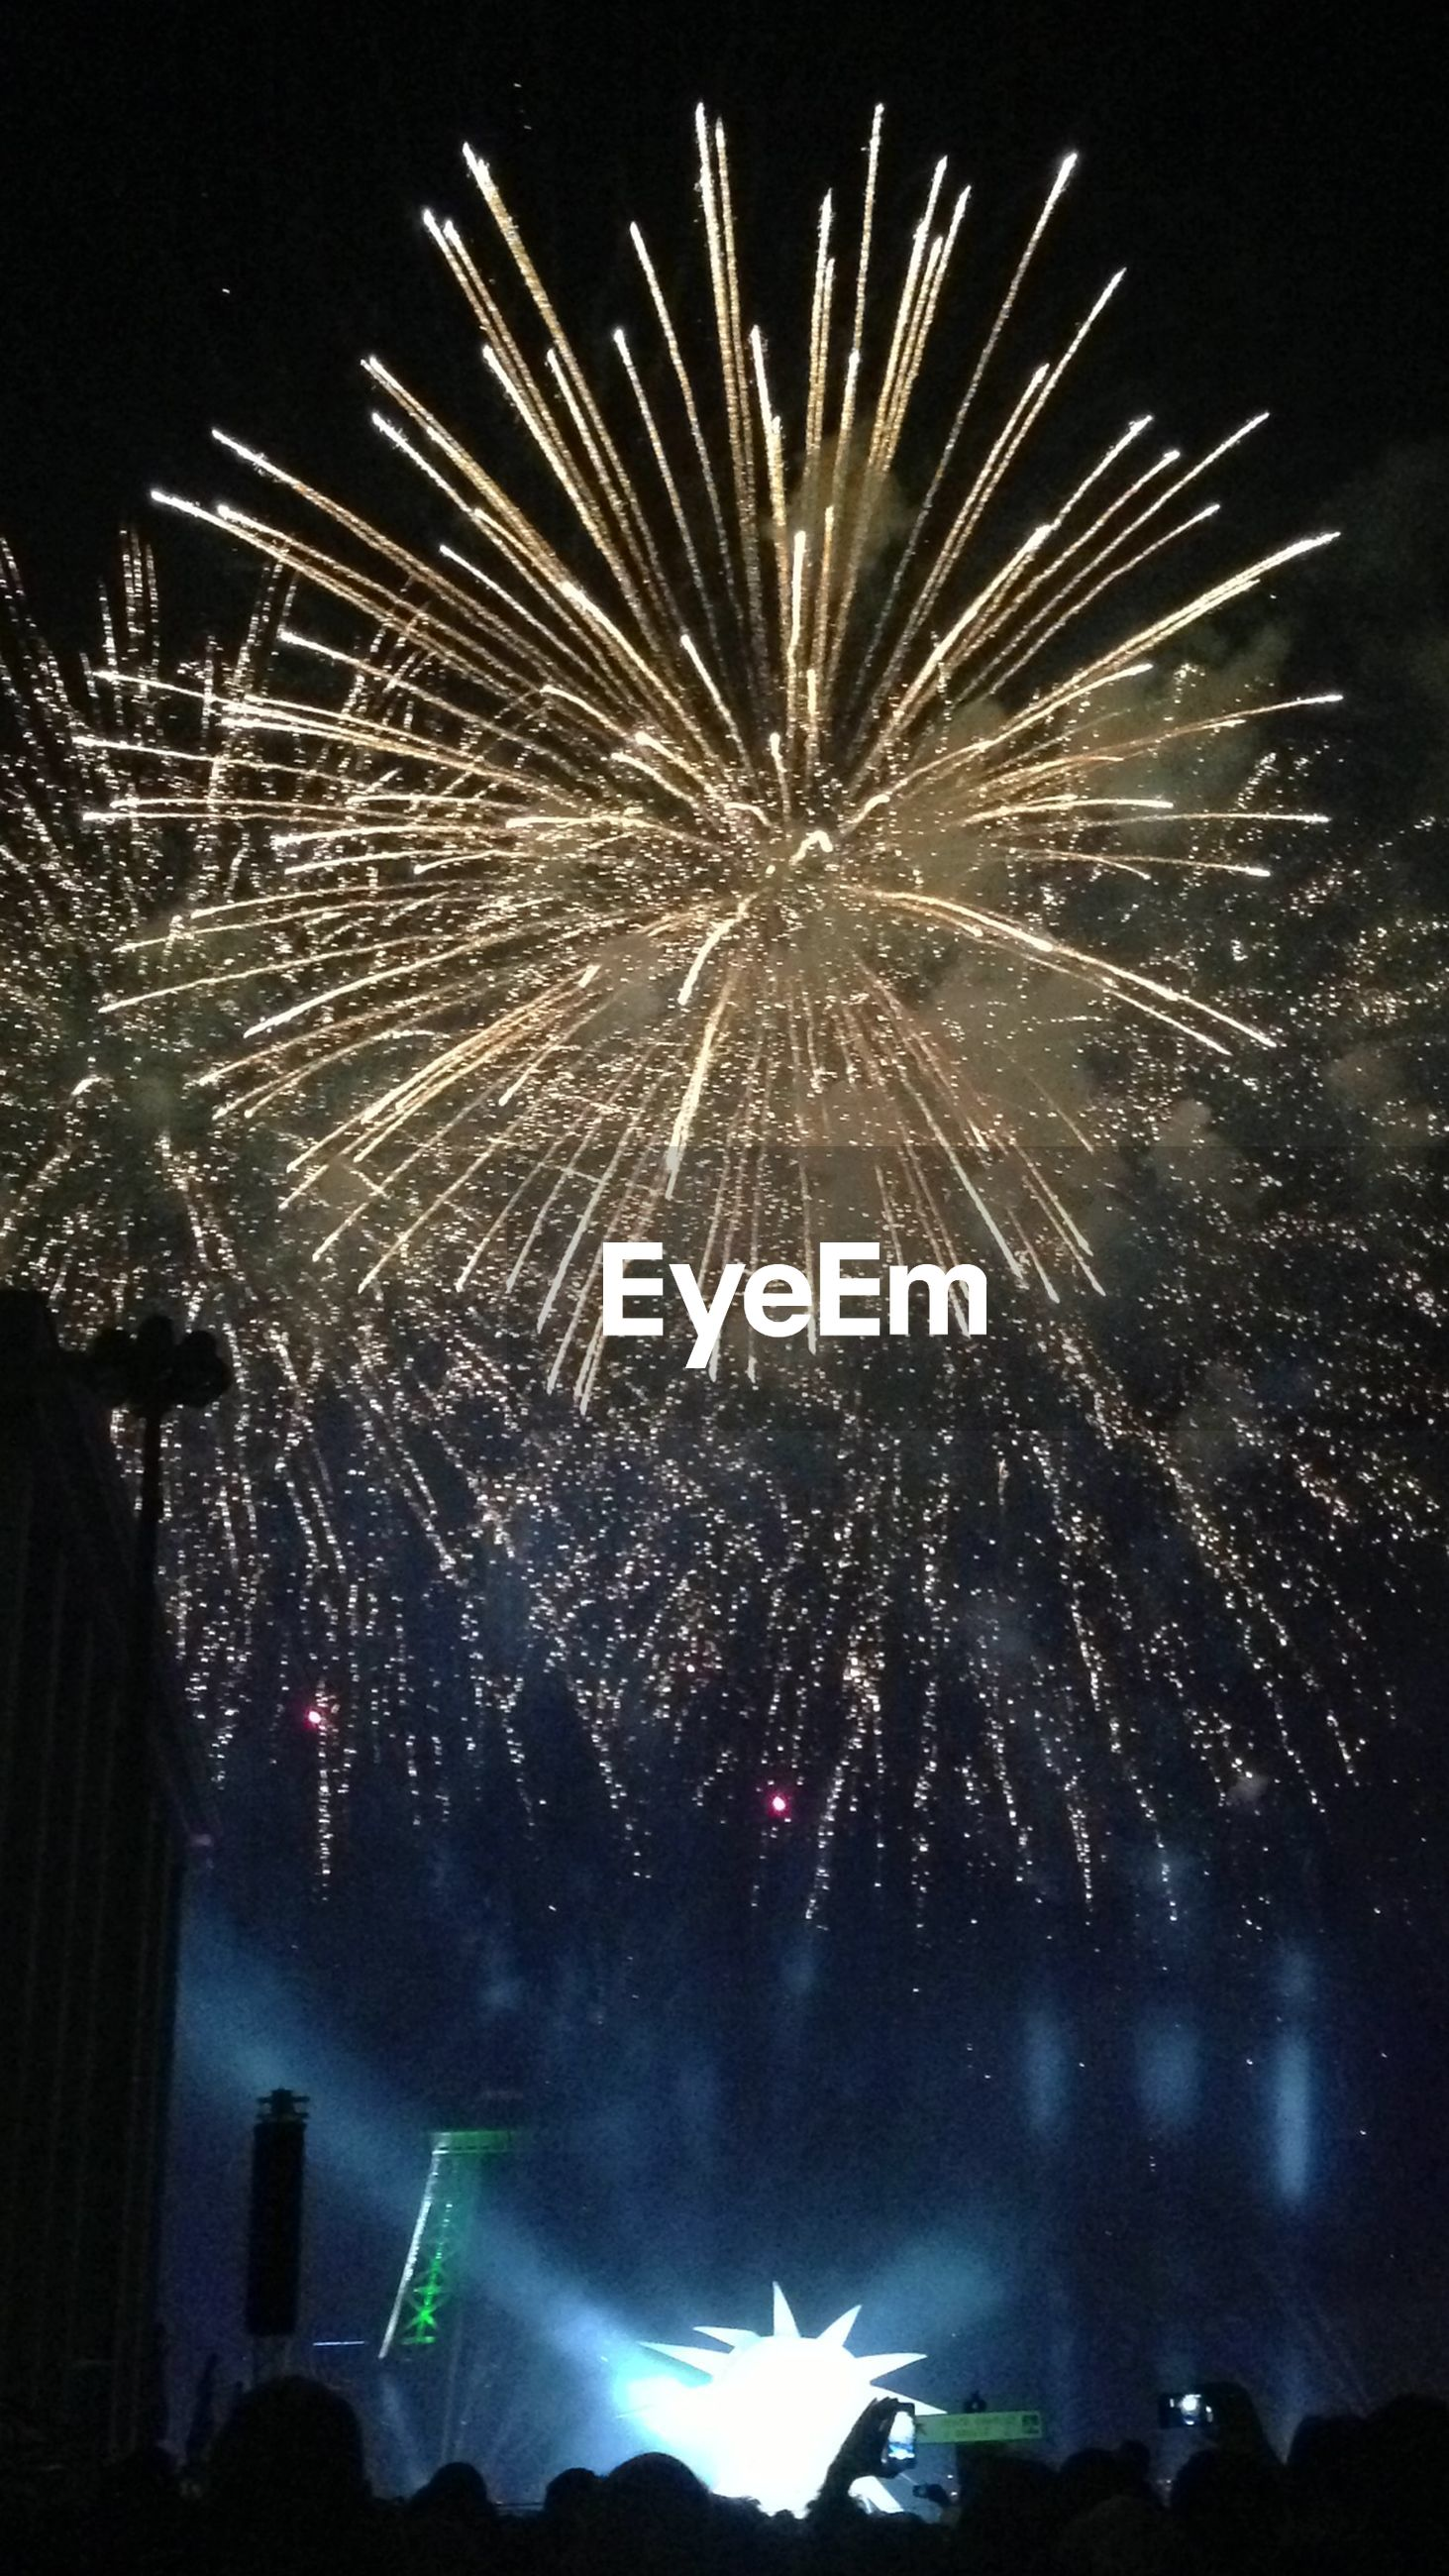 Low angle view of illuminated fireworks by eiffel tower against sky at night